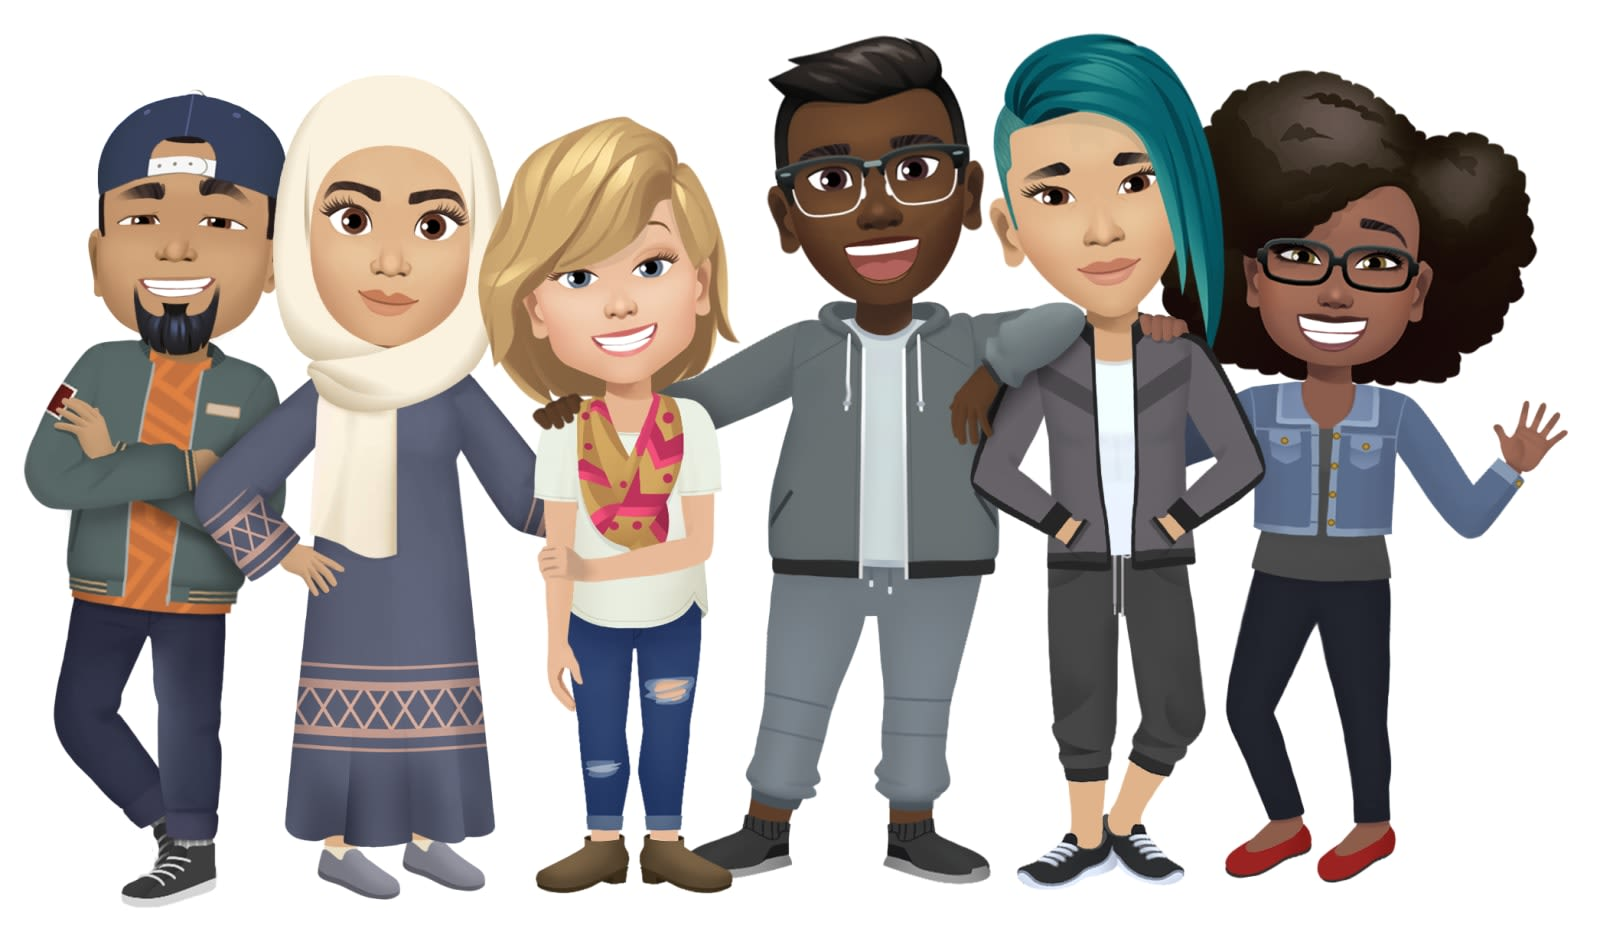 Facebook's Avatars are a belated answer to Bitmoji